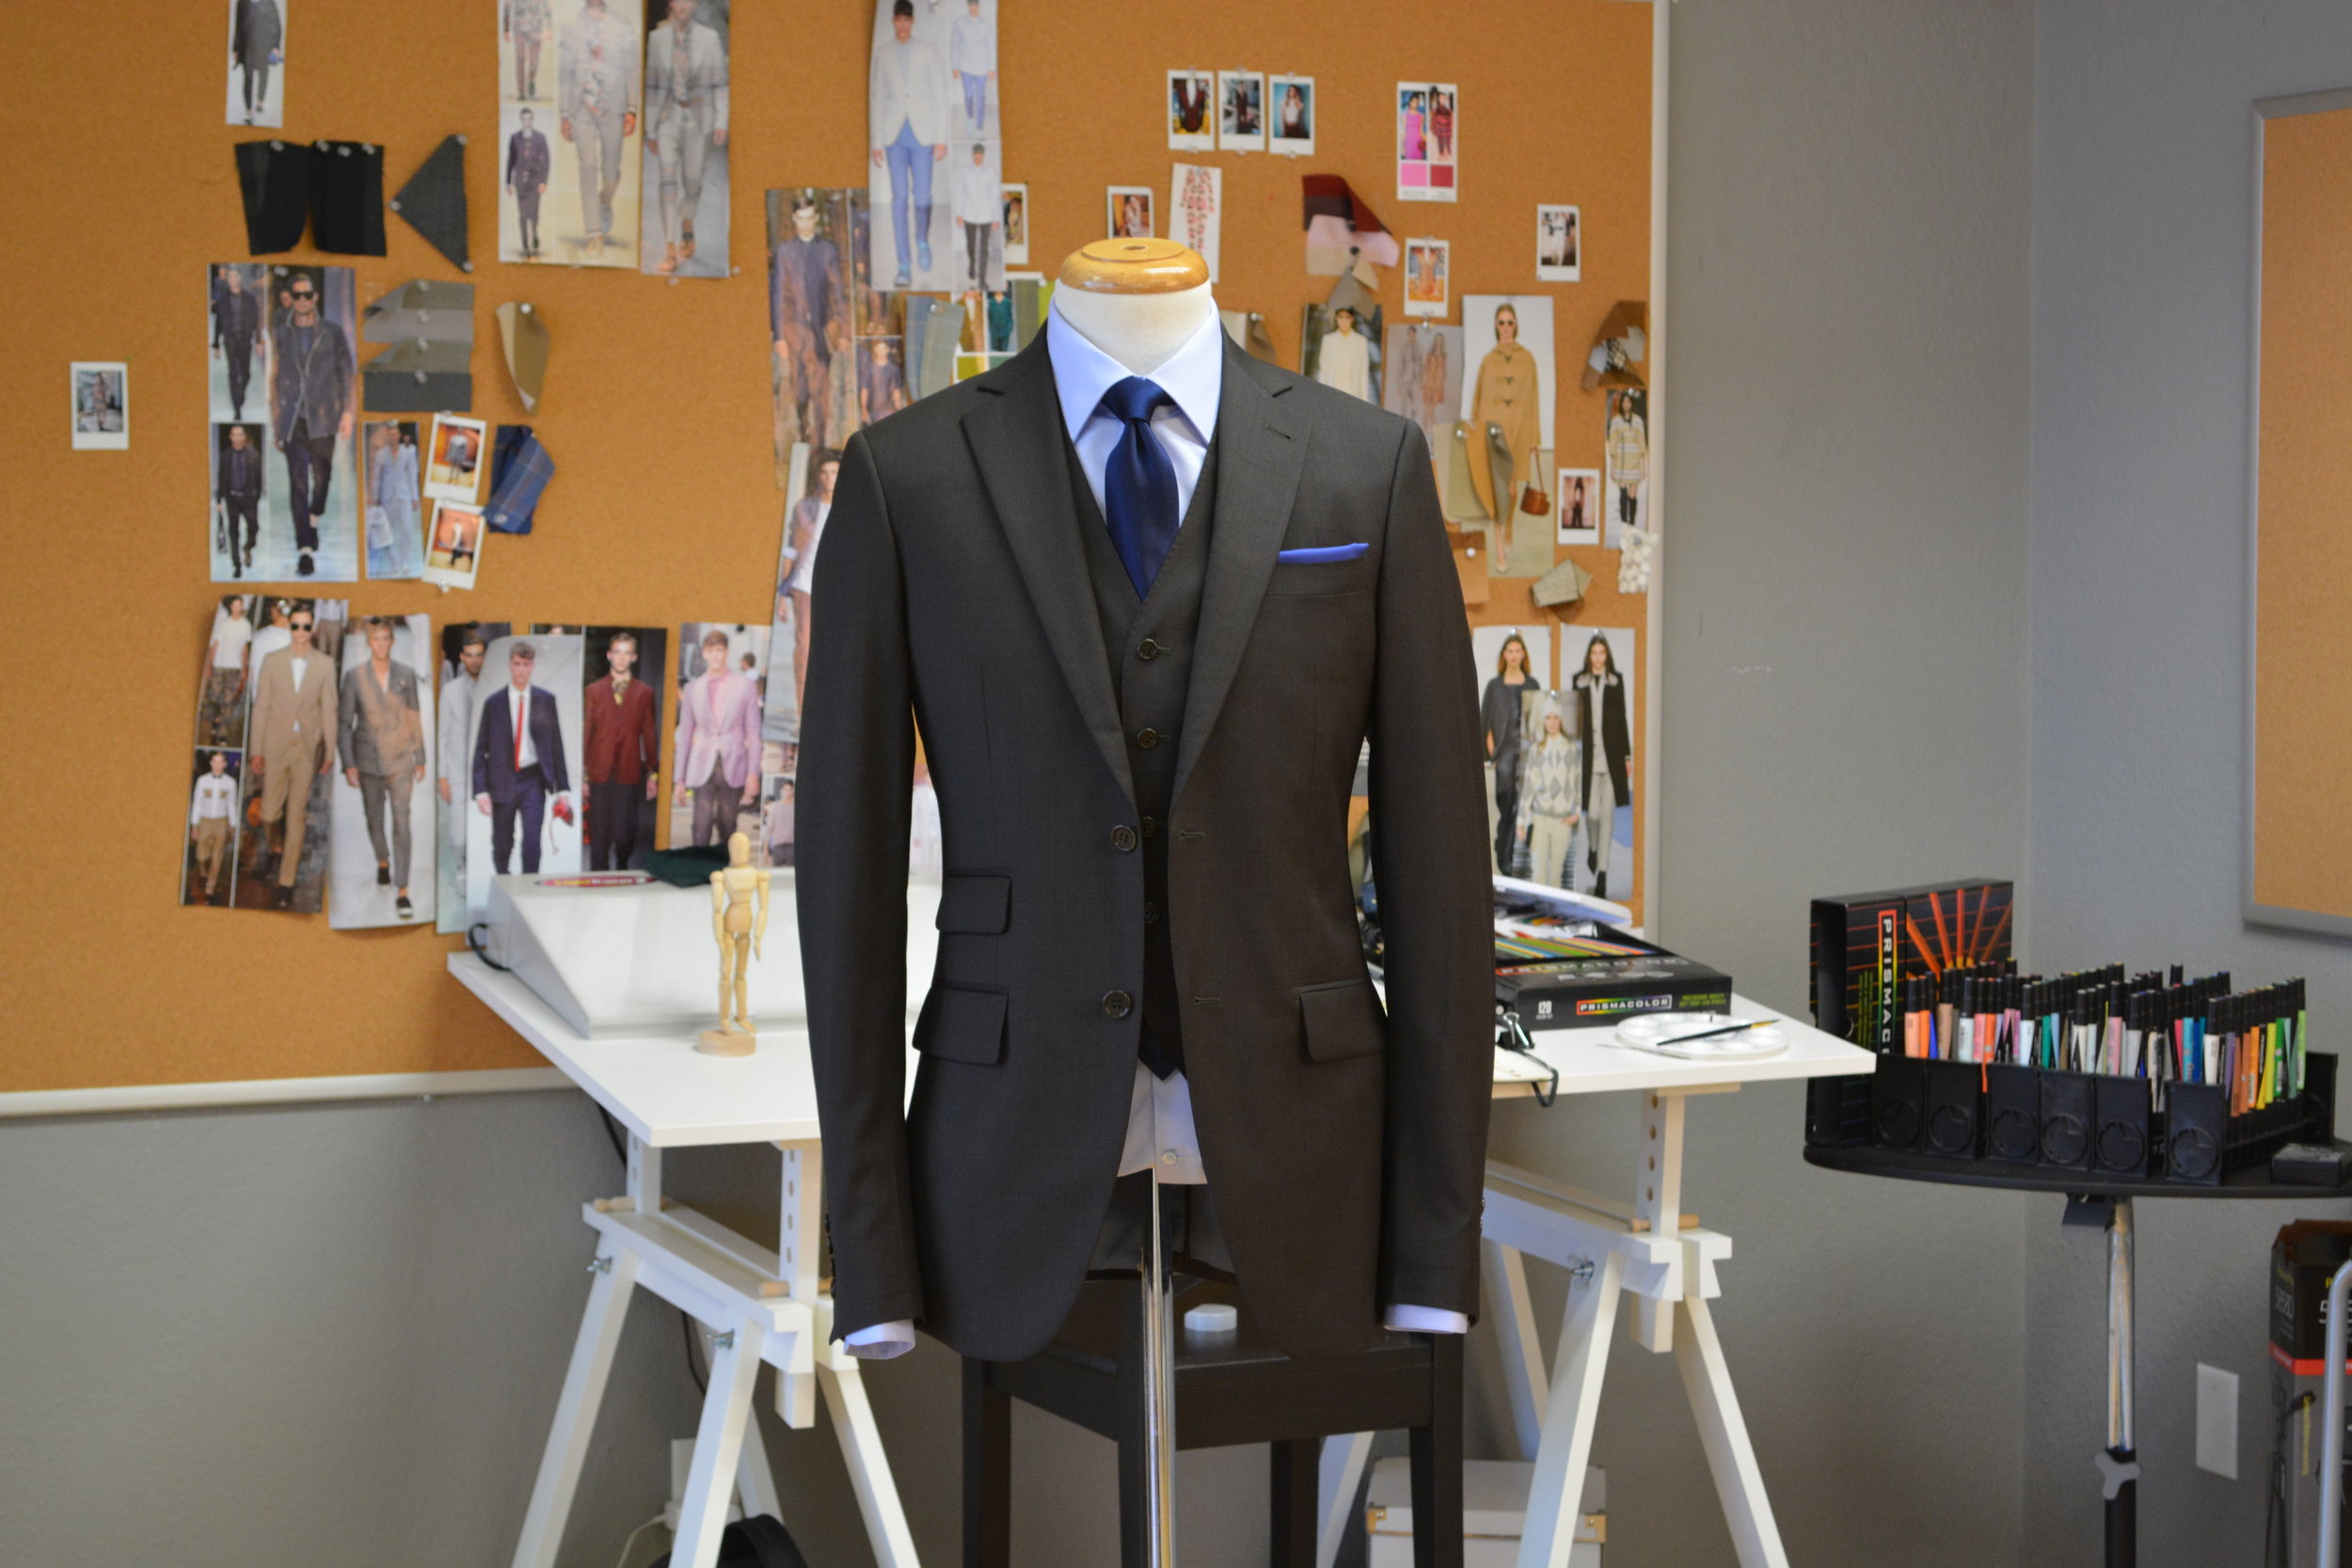 A great custom suit is a combination of artistry in pattern making, skill of tailoring and creative design.